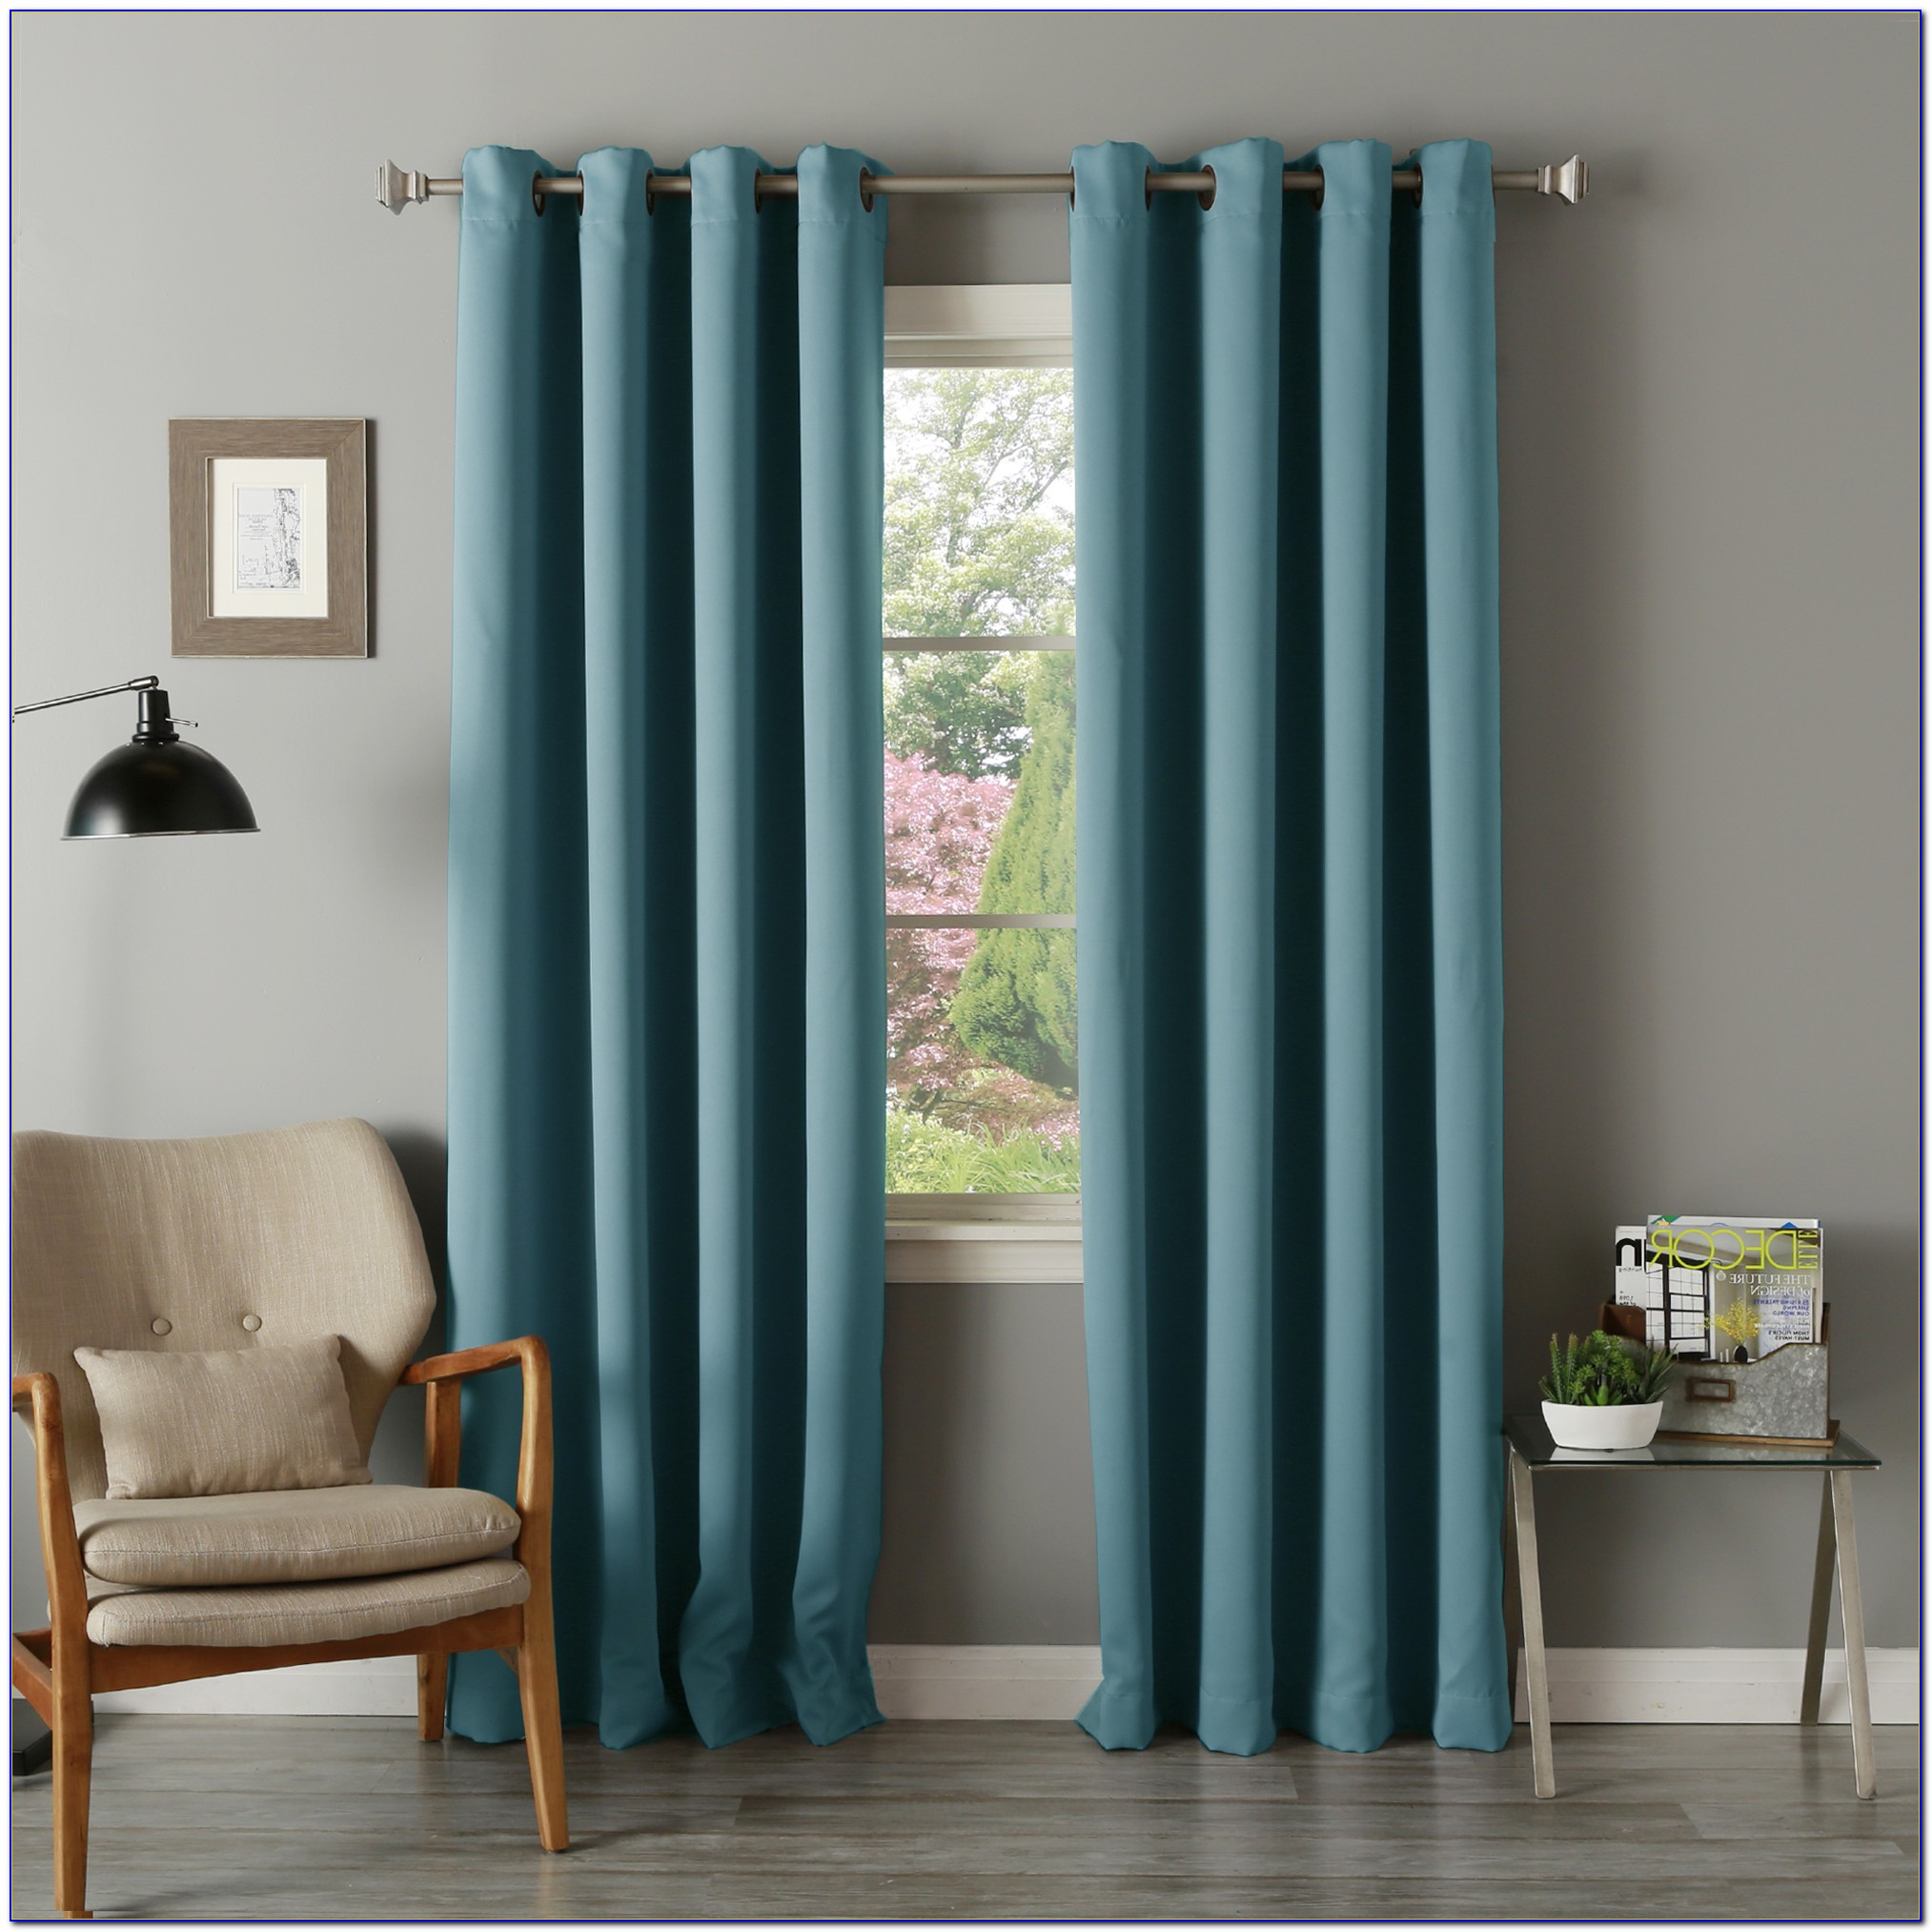 Thermal Blackout Curtains Target